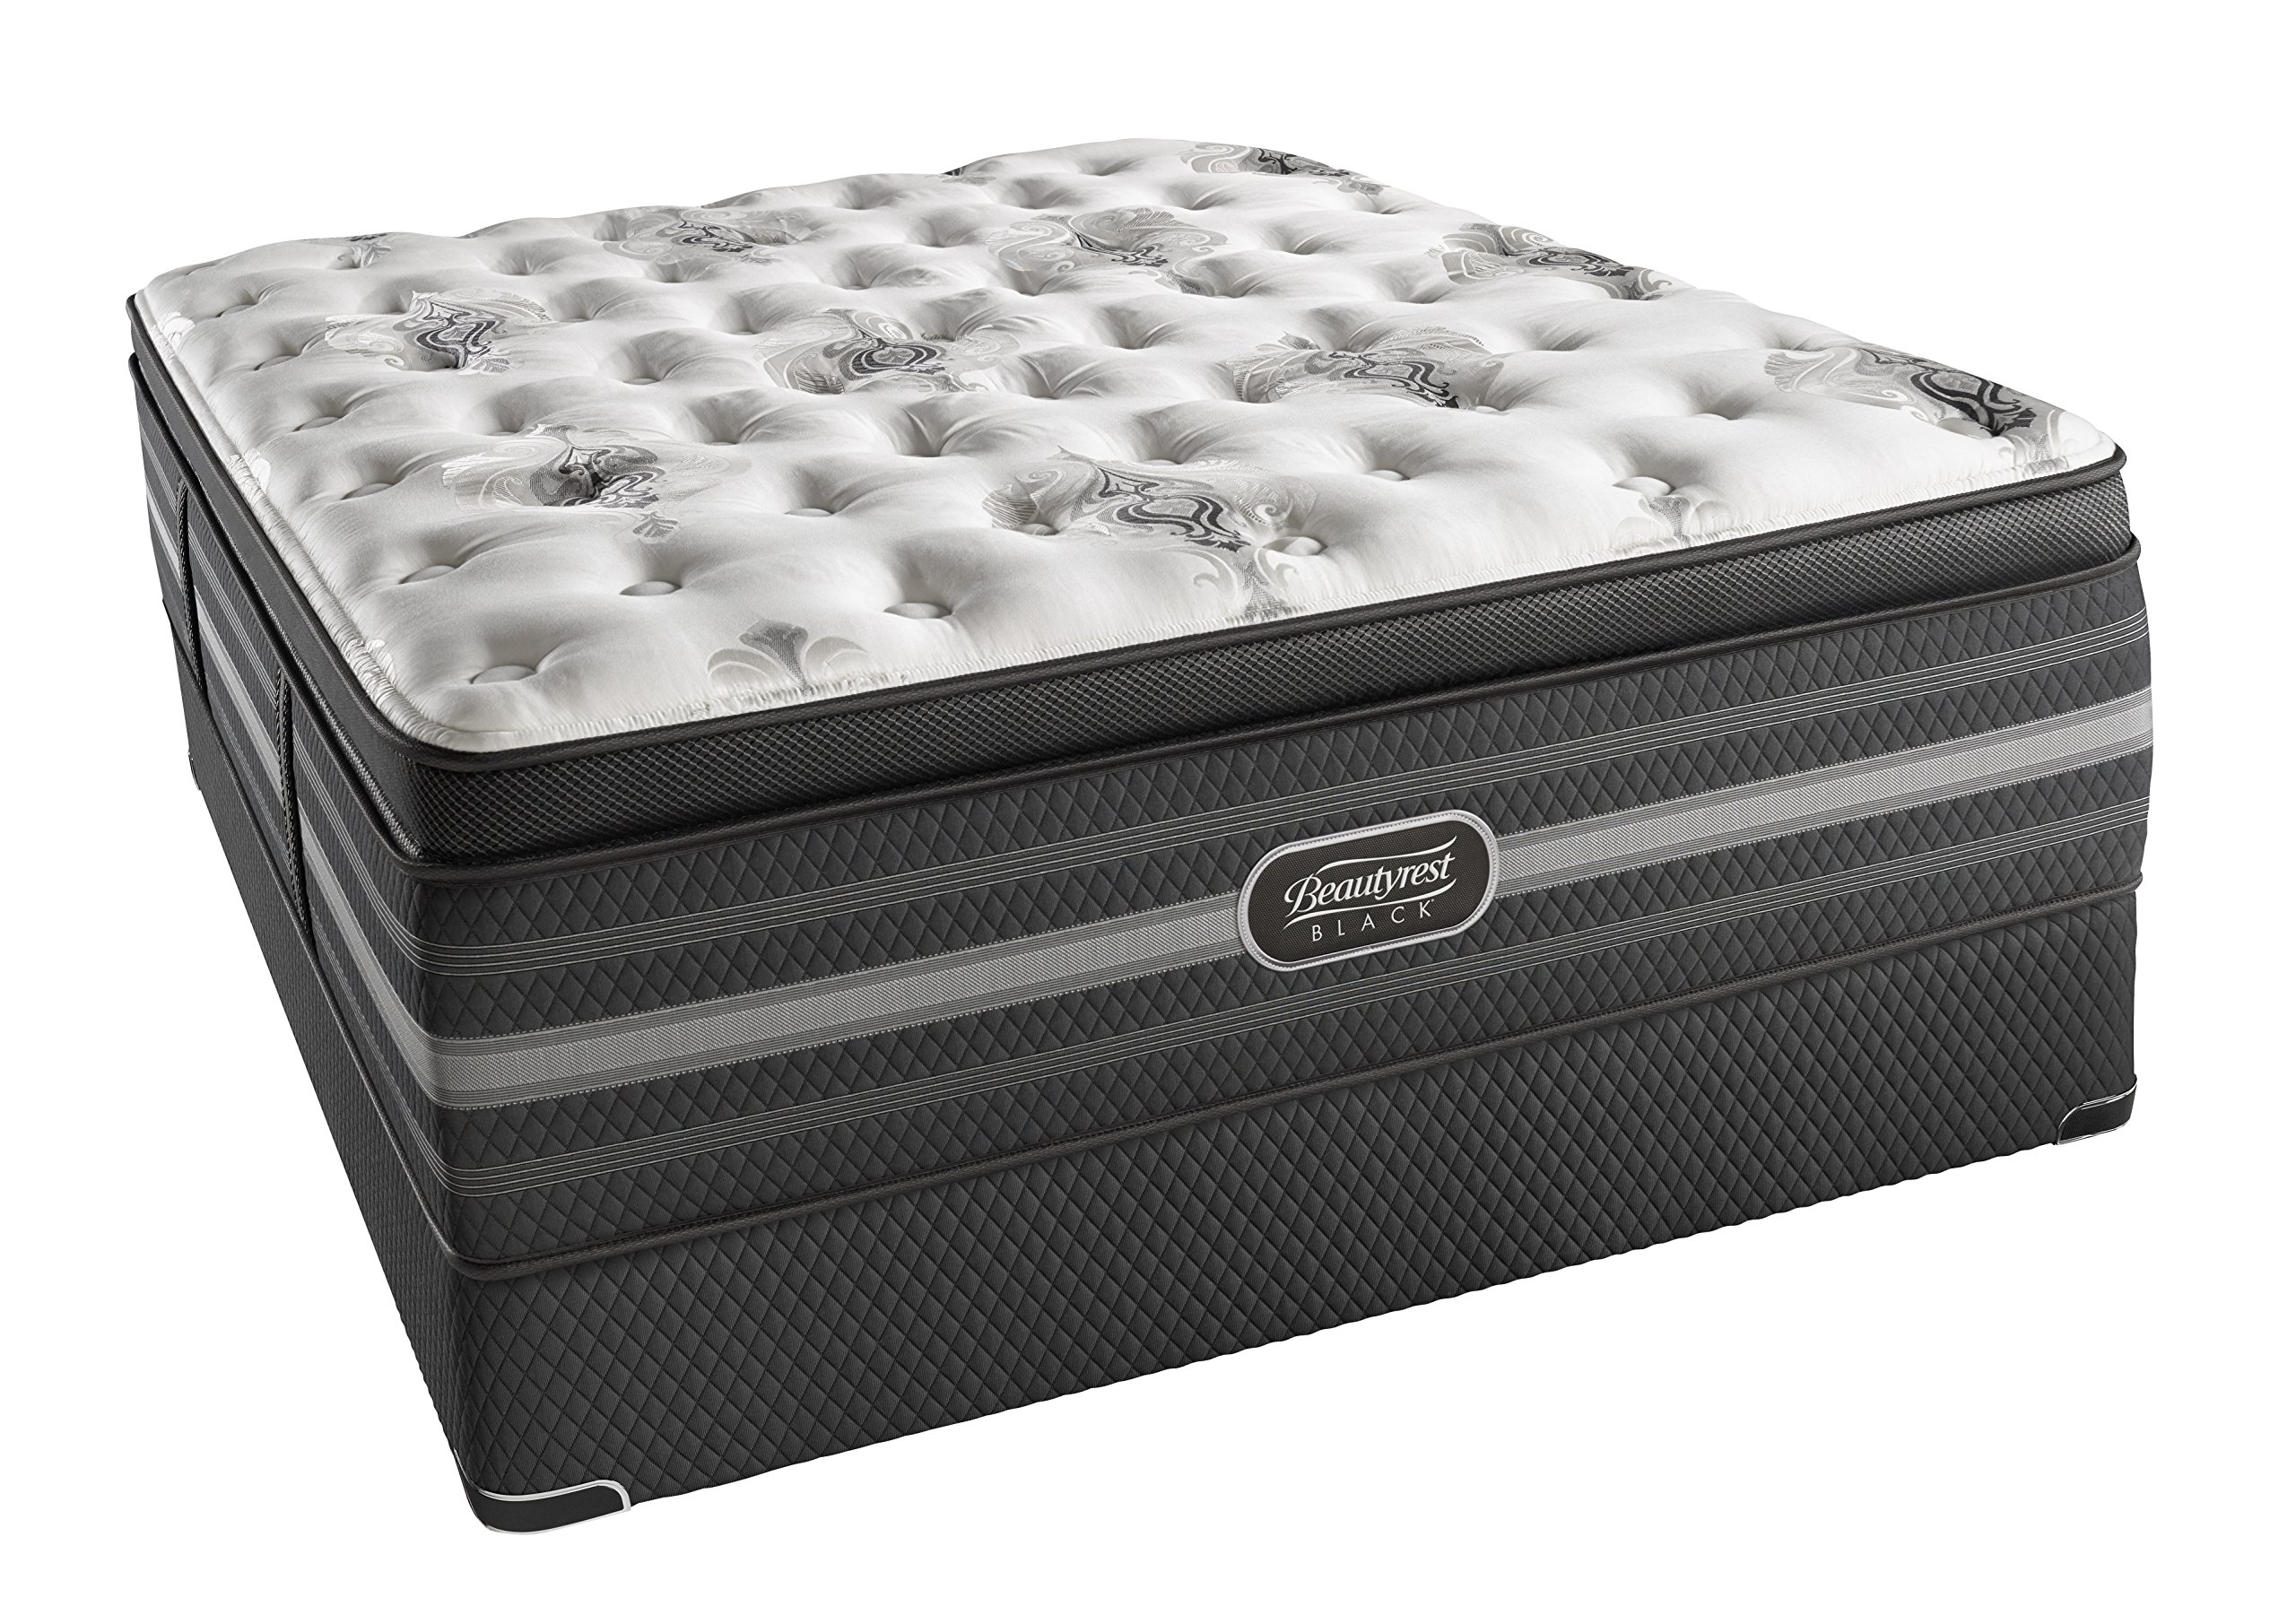 Beautyrest Black Sonya Luxury Firm Pillow Top Mattress, King by Simmons